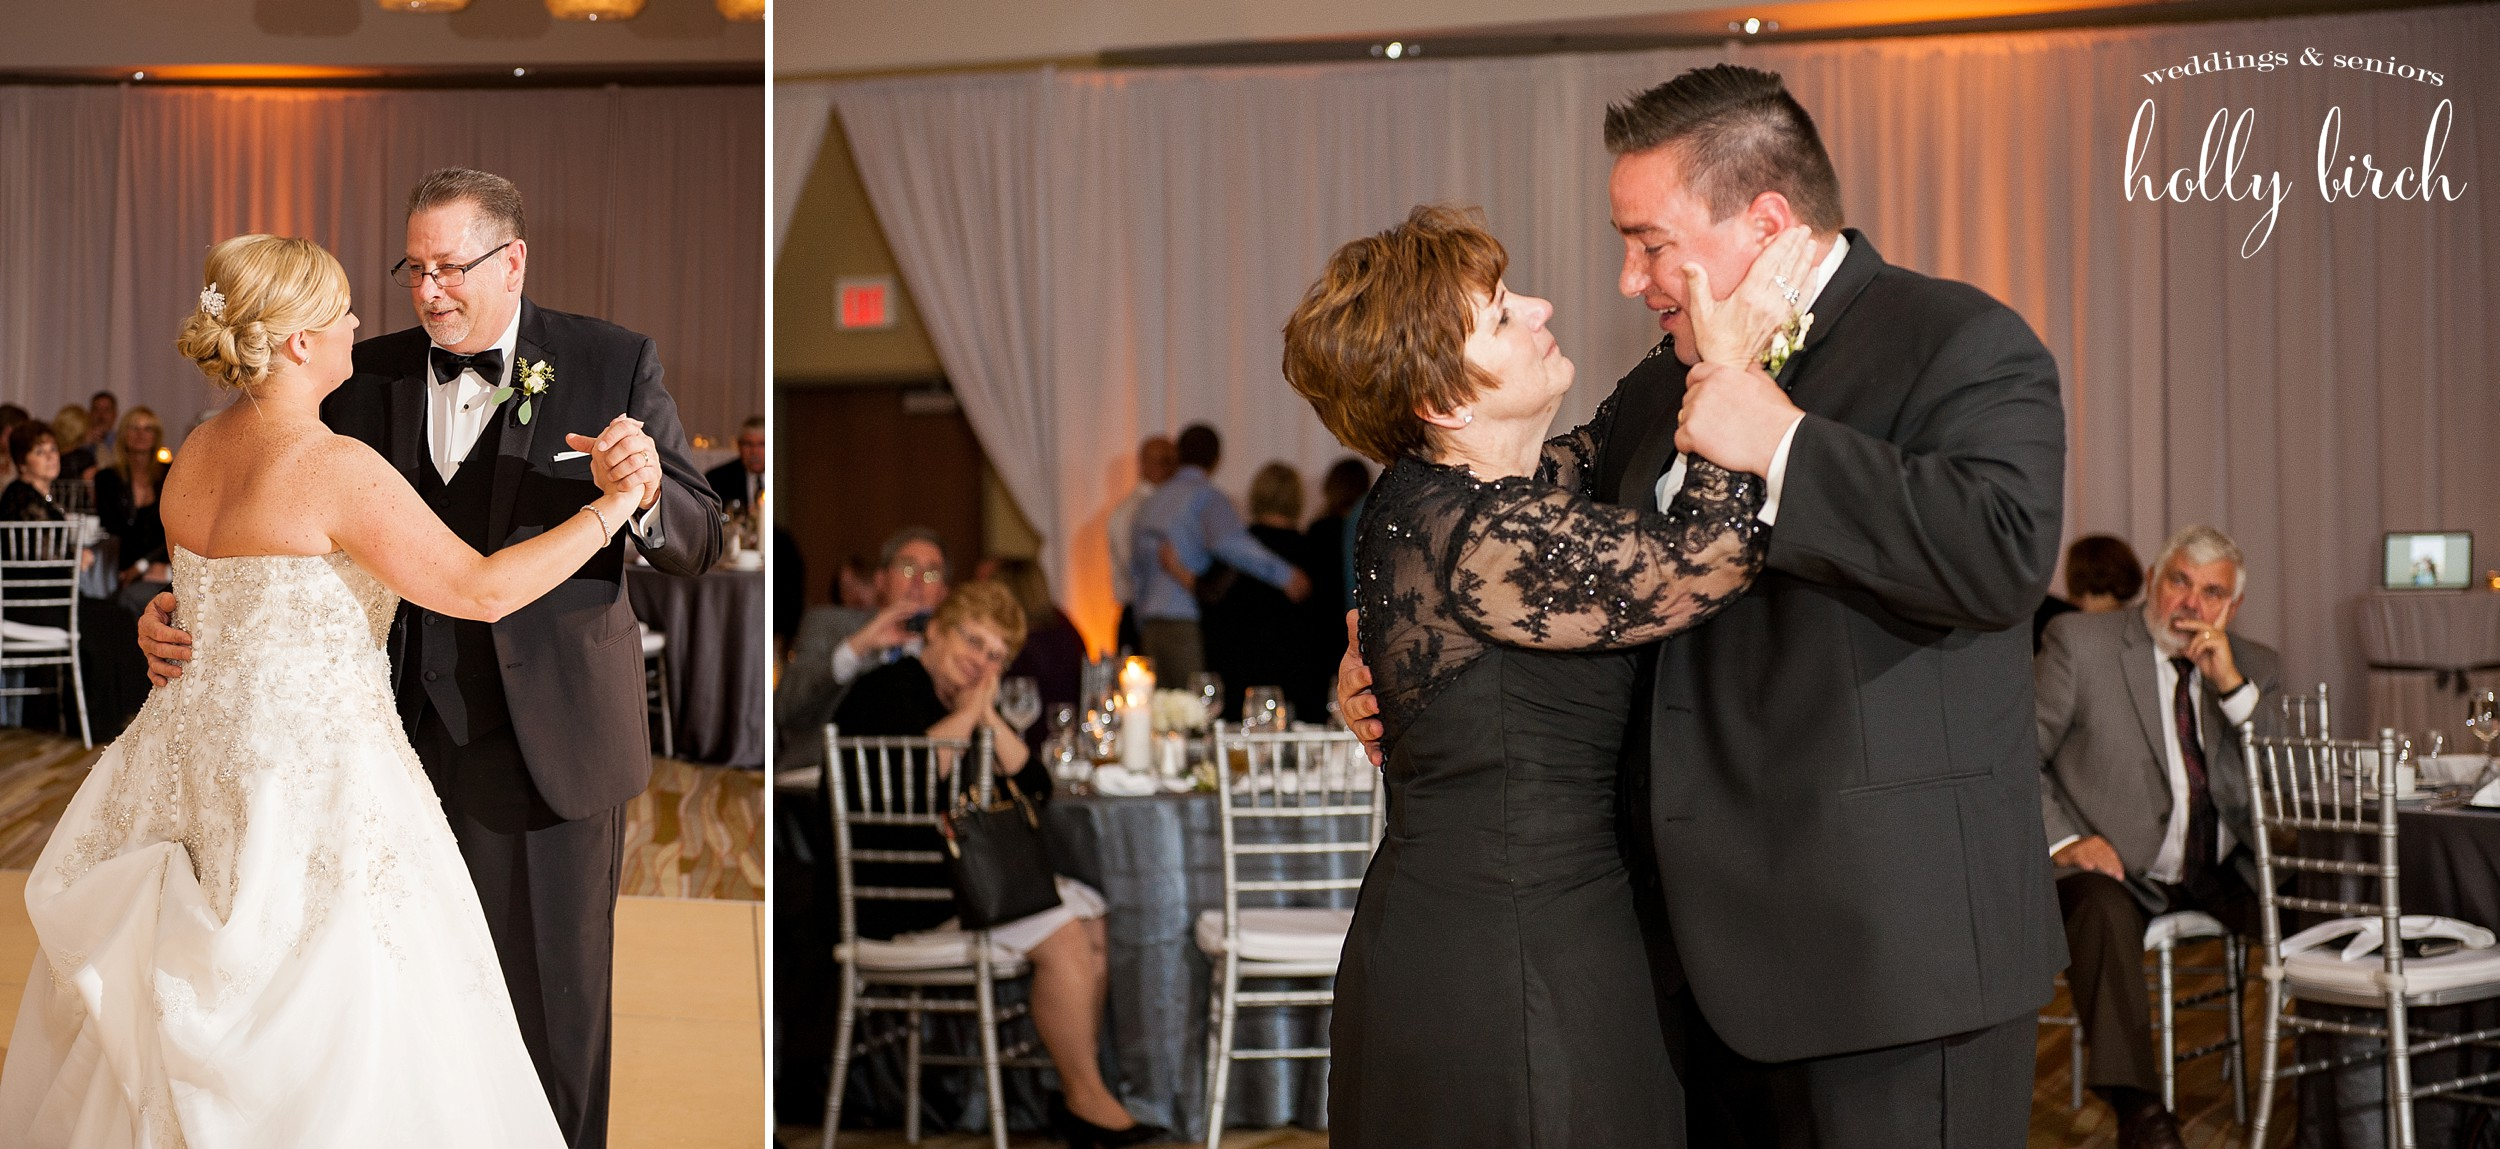 parents' first dance